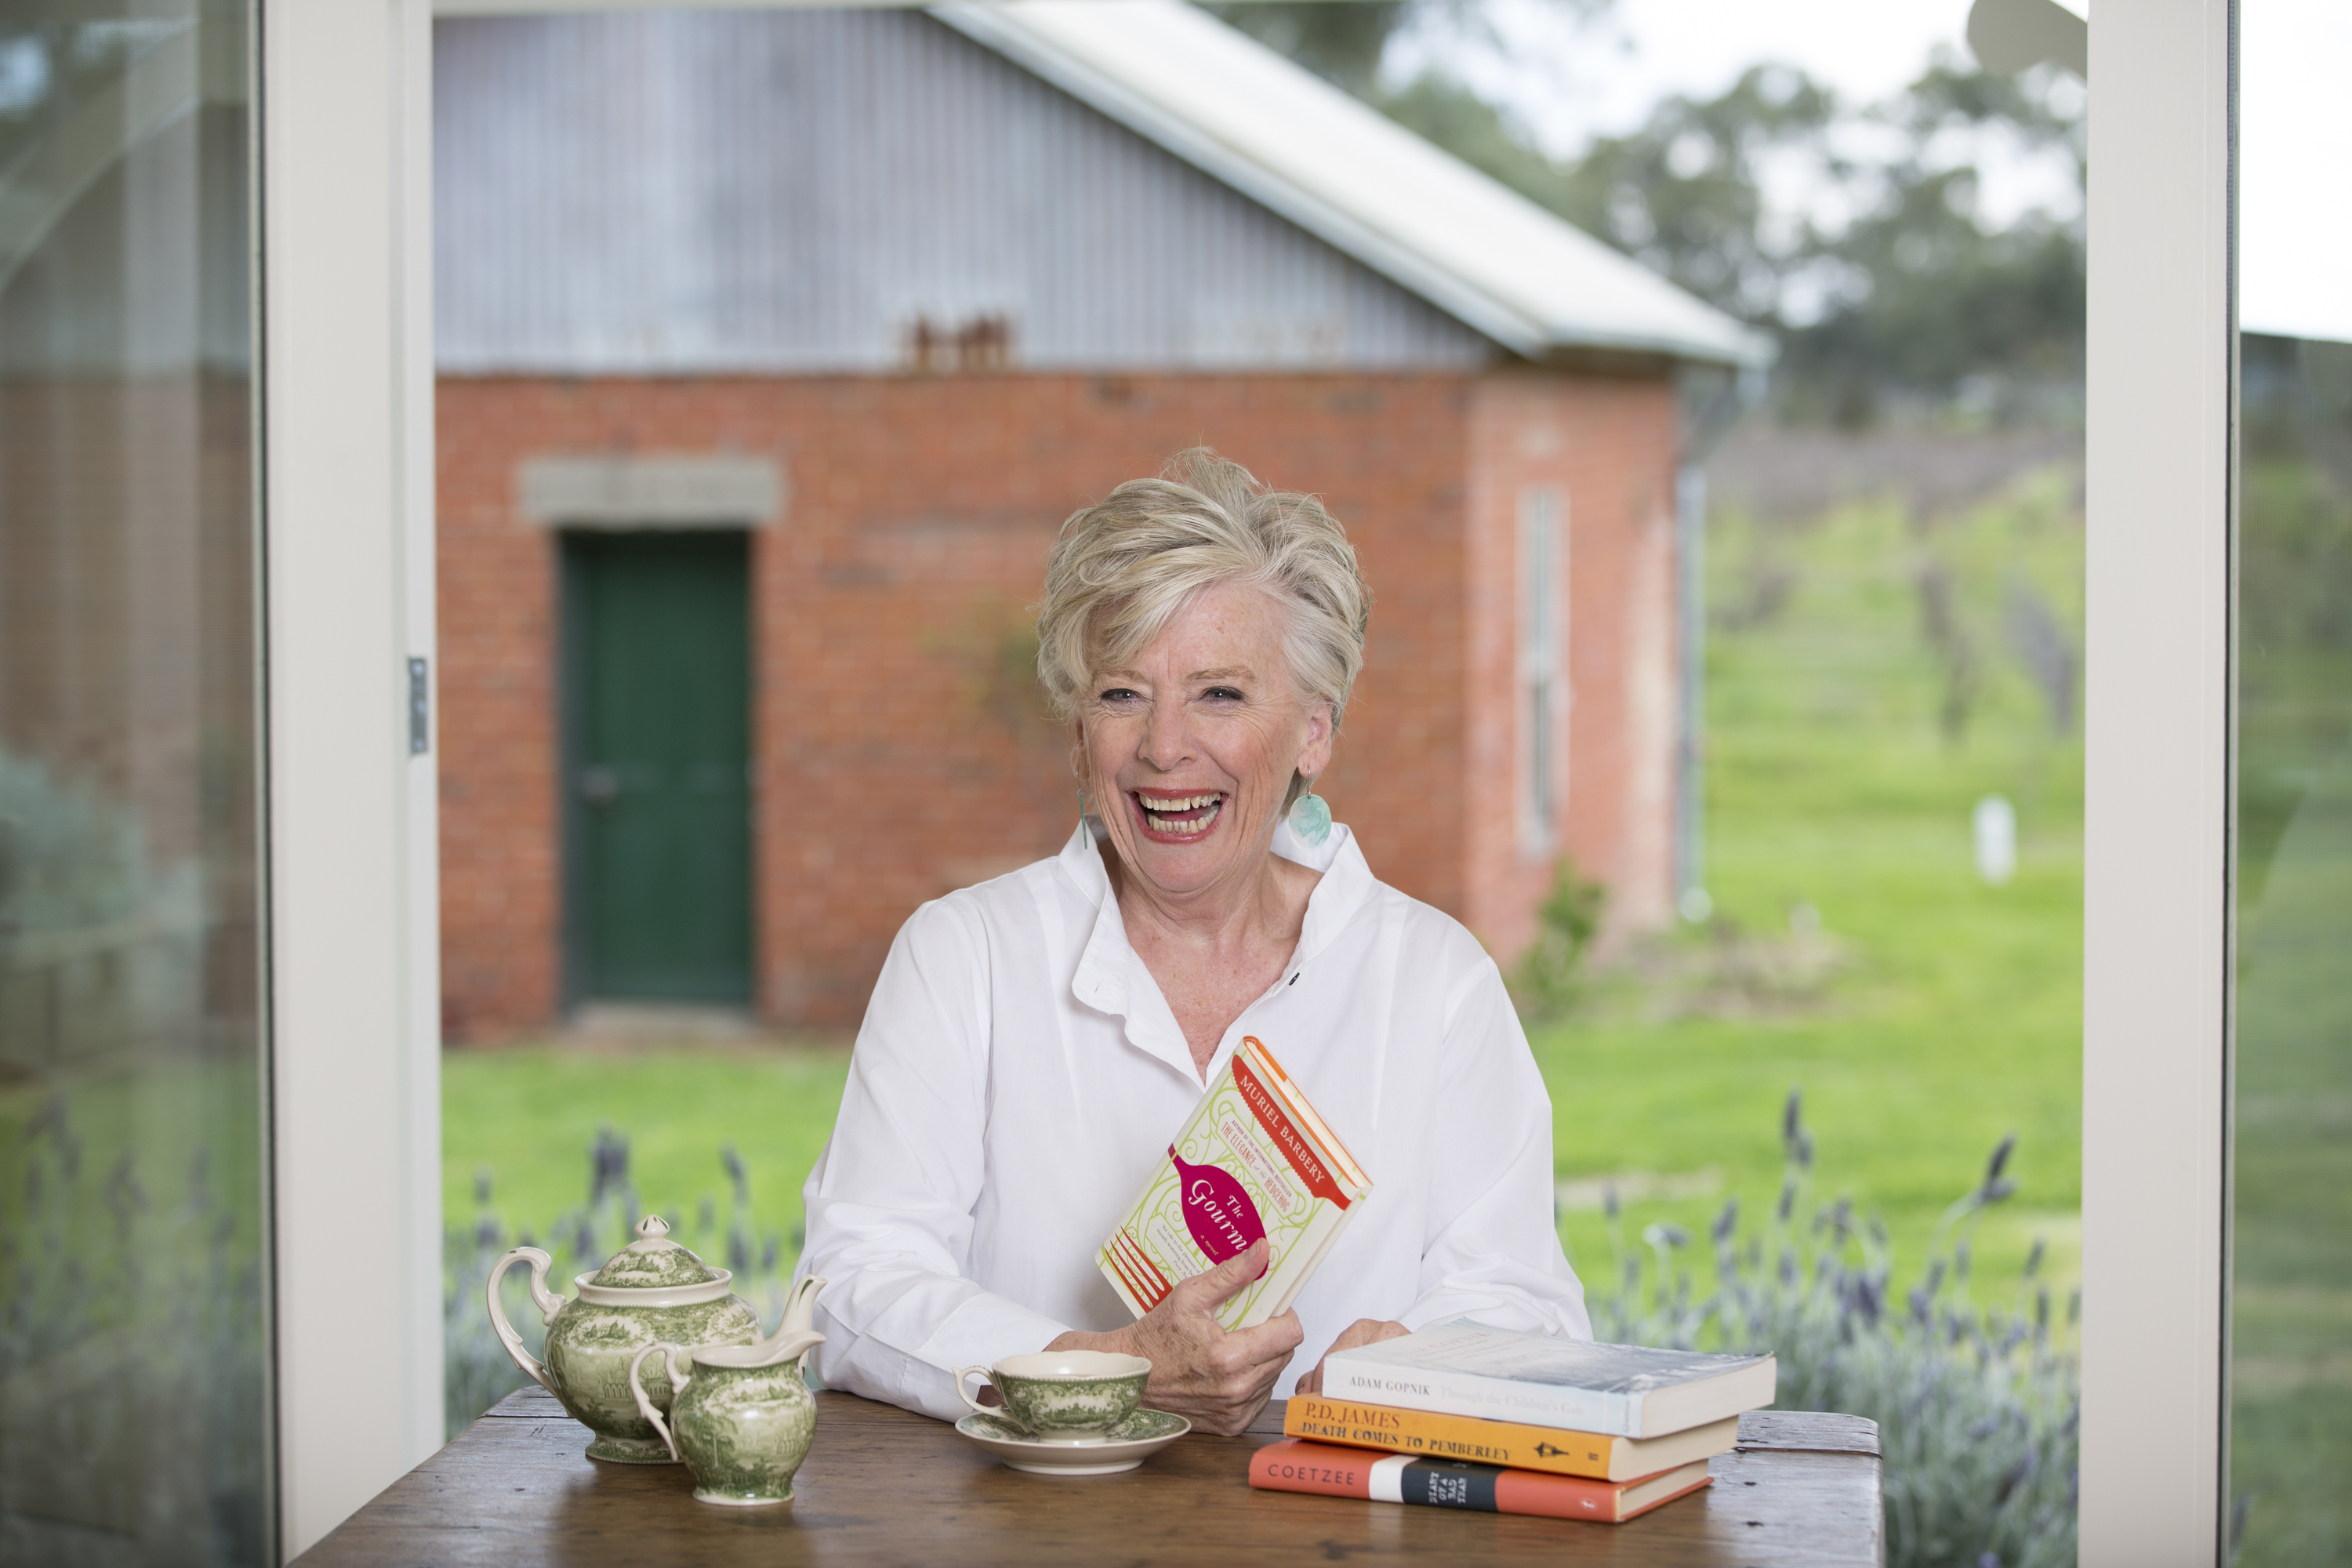 Maggie Beer sitting at a table holding one of her cookbooks.